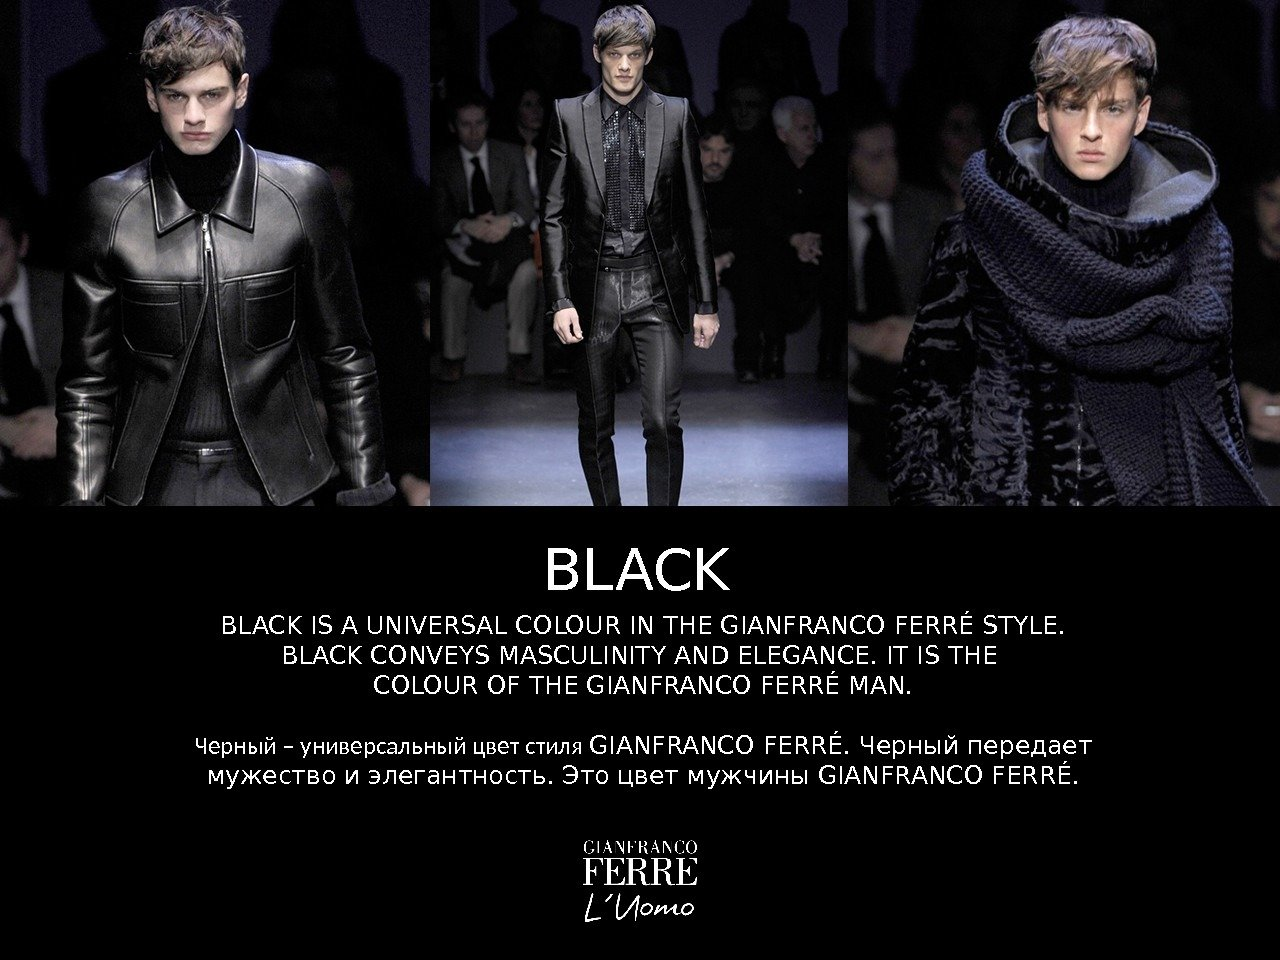 BLACK IS A UNIVERSAL COLOUR IN THE GIANFRANCO FERRÉ STYLE. BLACK CONVEYS MASCULINITY AND